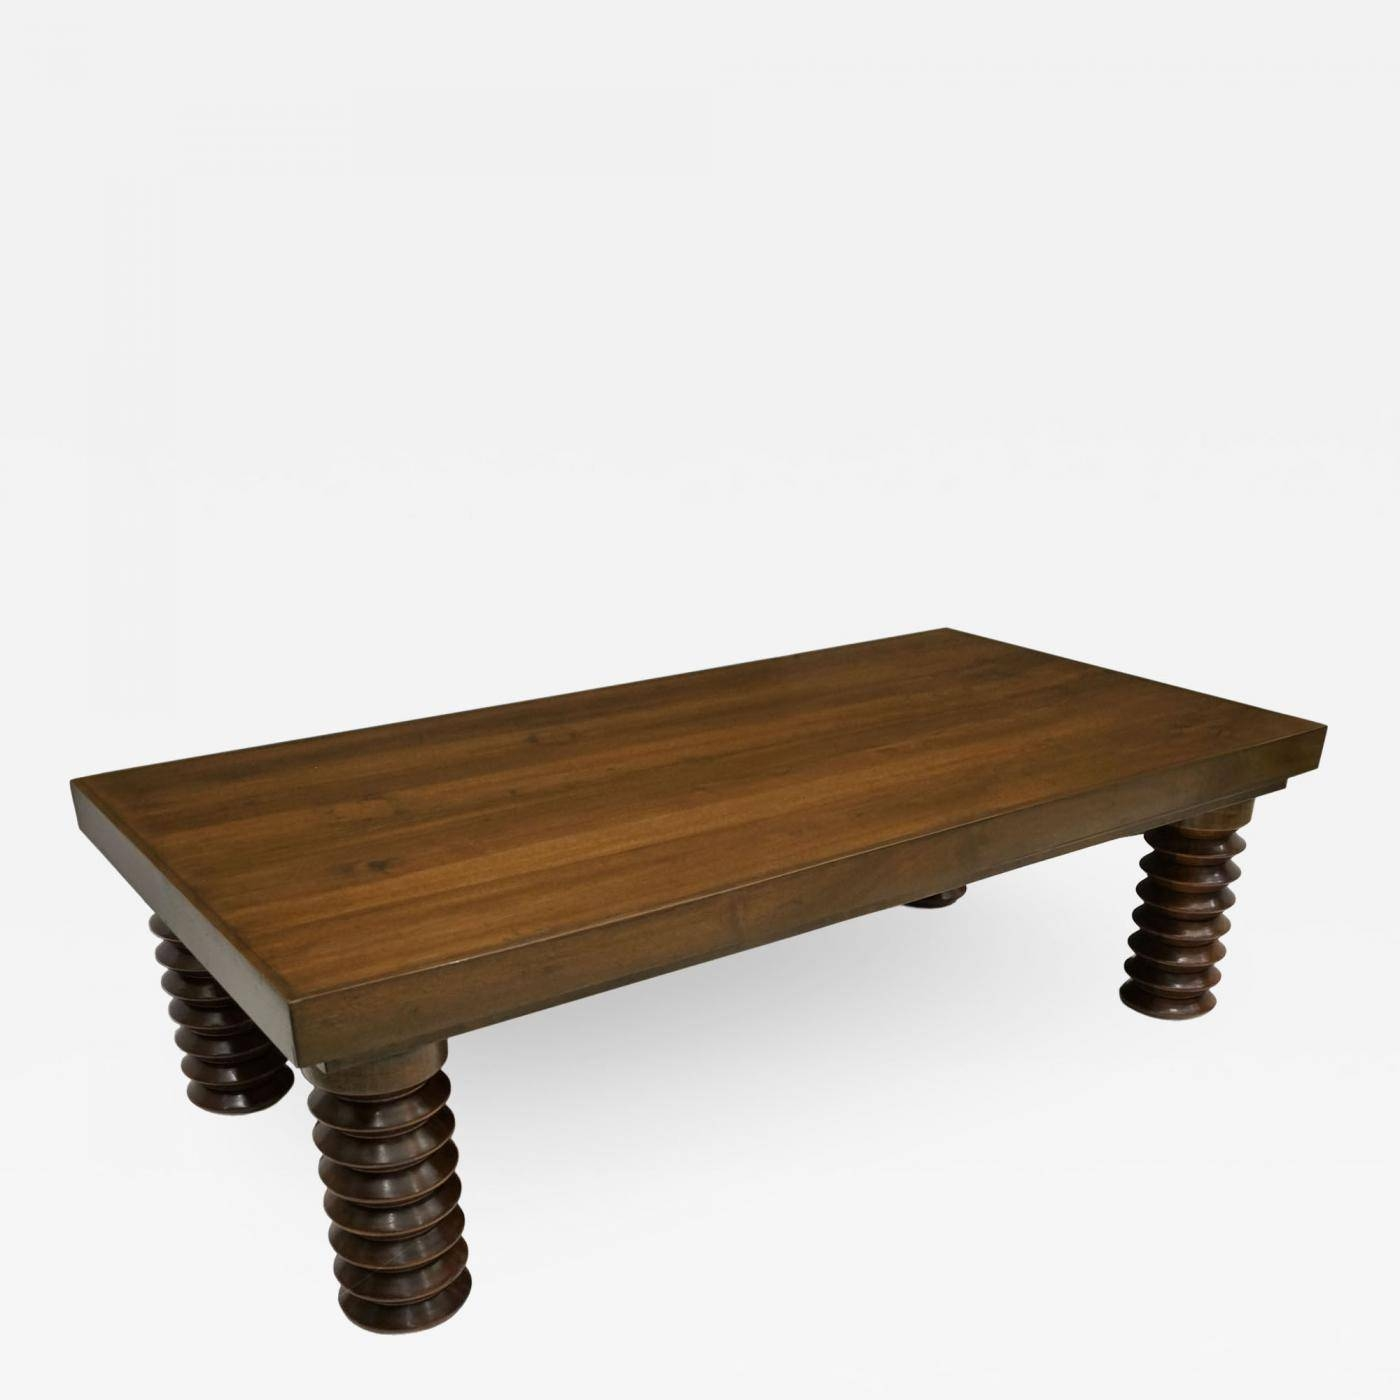 Large, Solid Wood Coffee Table On Turned Legs regarding Large Solid Wood Coffee Tables (Image 9 of 15)